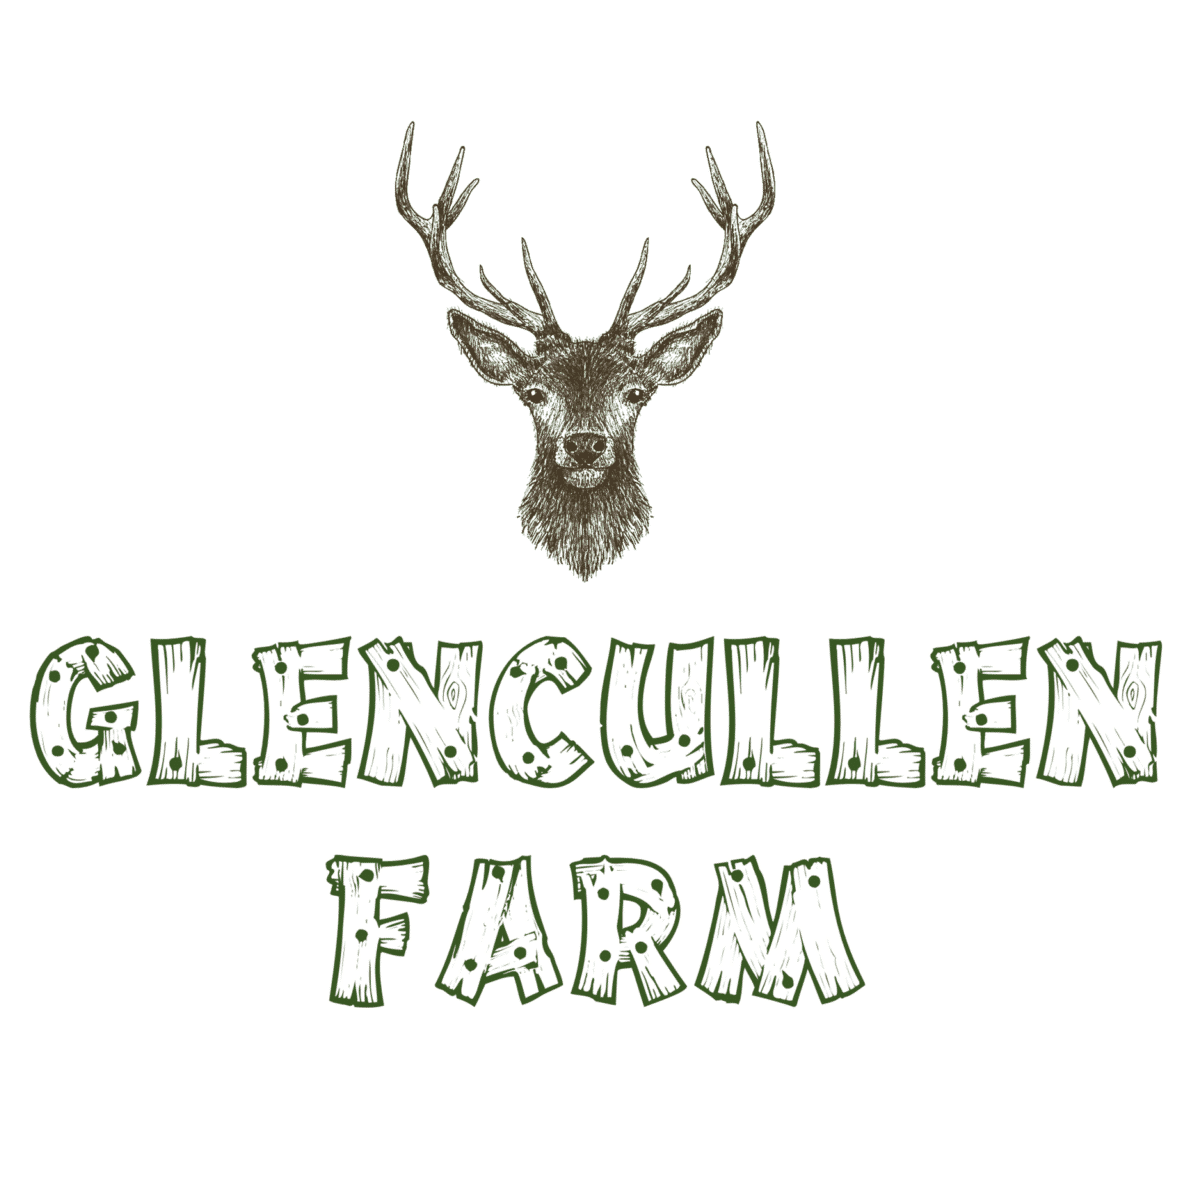 Glencullen Farm Holly Wood Giant Irish Deer Logo